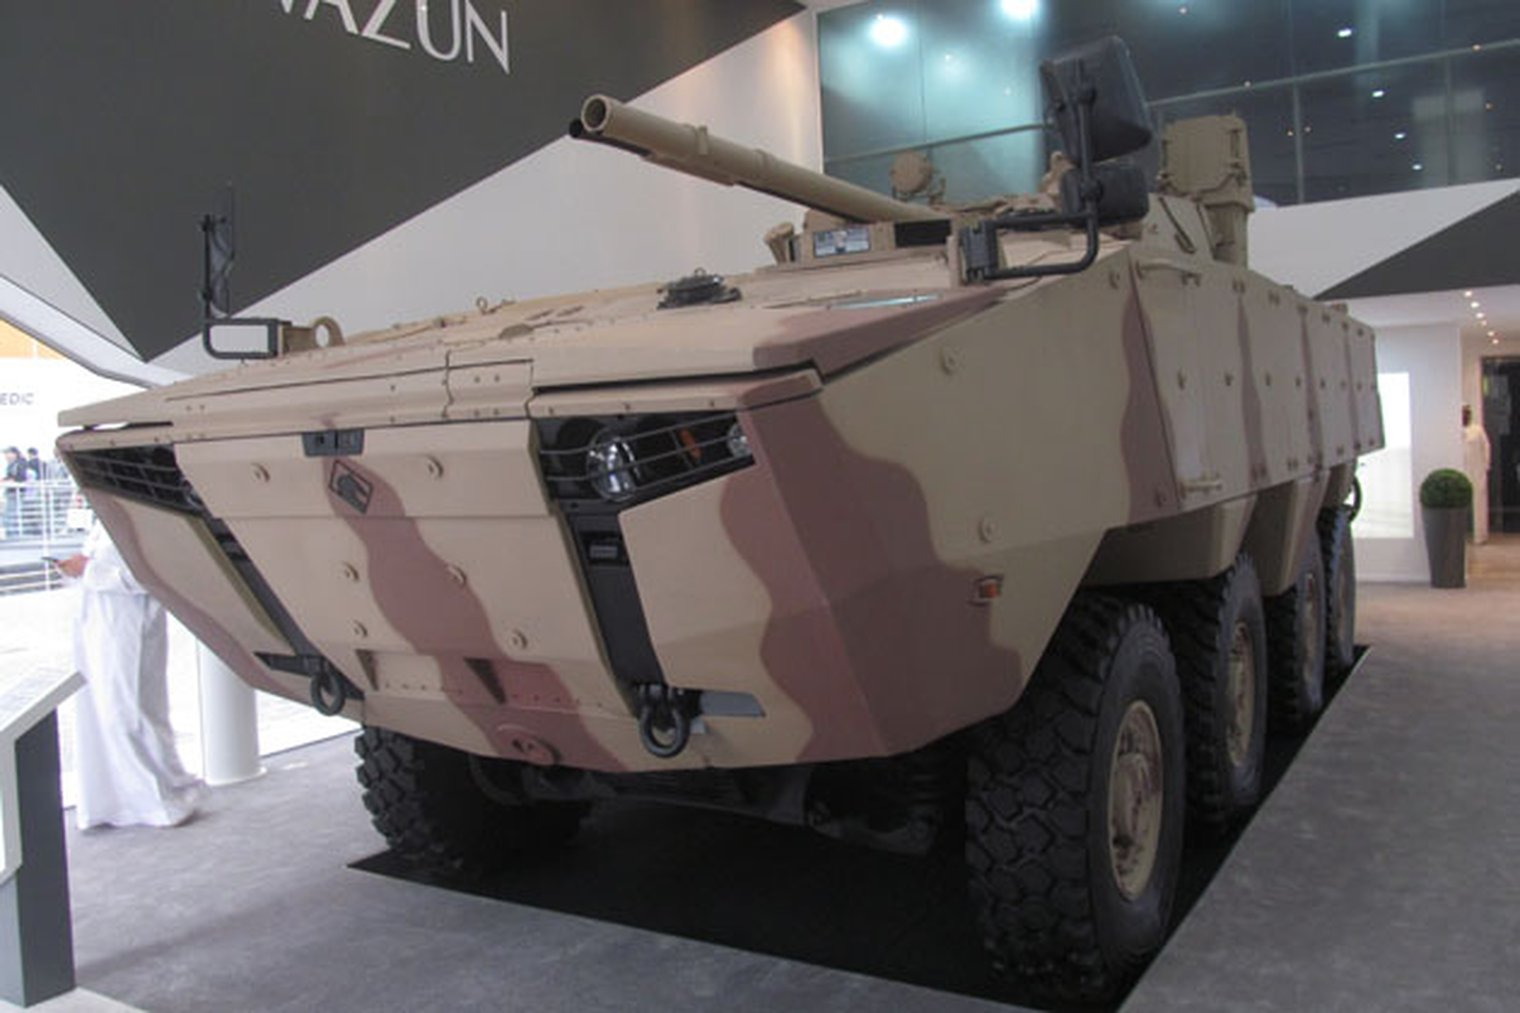 Idex 2017 New Rabdan Ends Uae 8x8 Search Lwi Land